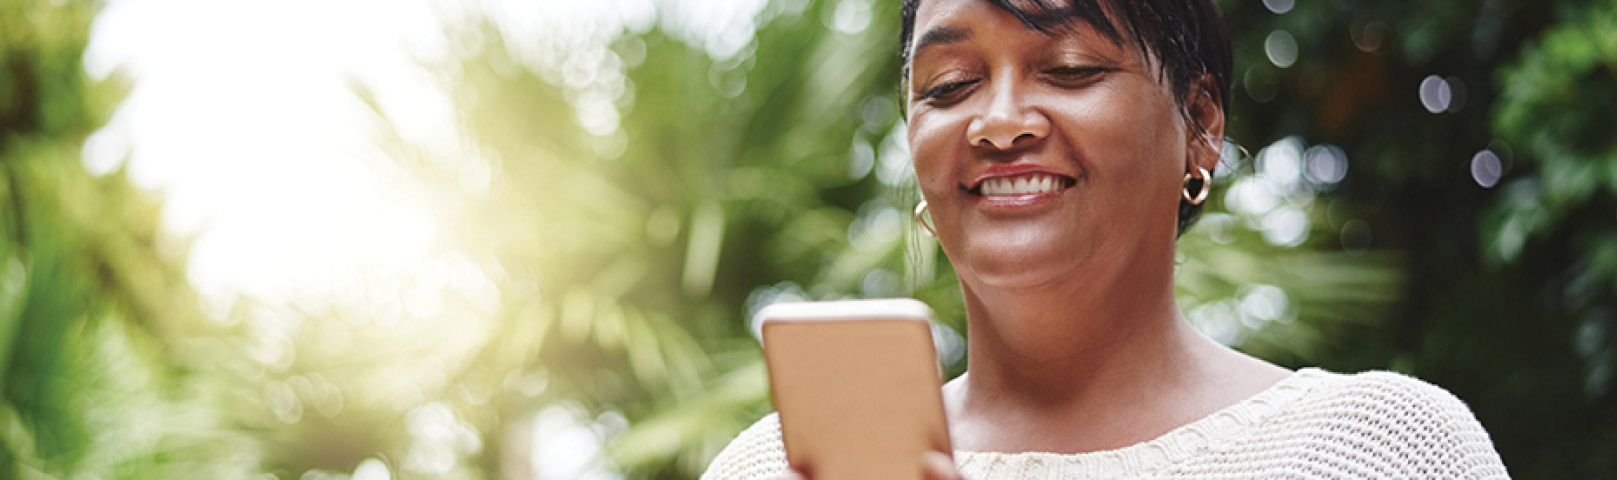 Mobile apps can enhance your hearing health. Slug: turn-up-your-hearing-with-5-apps